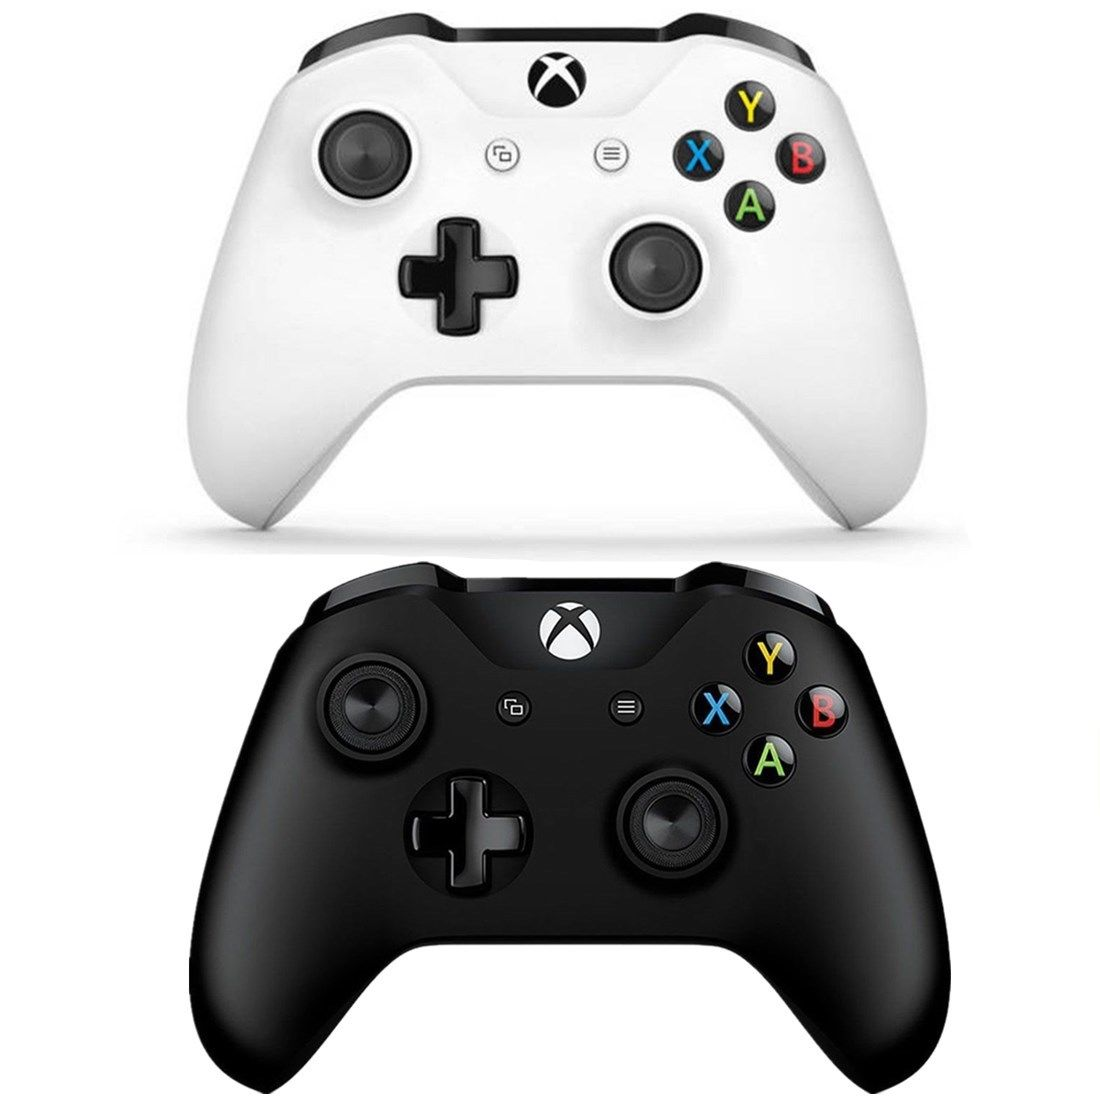 Xbox One S Microsoft Controller Glacier Wireless Black Bluetooth With 3 5mm Headset Jack Spy Bug Cell Tv Video Audio Electronics Gadgets